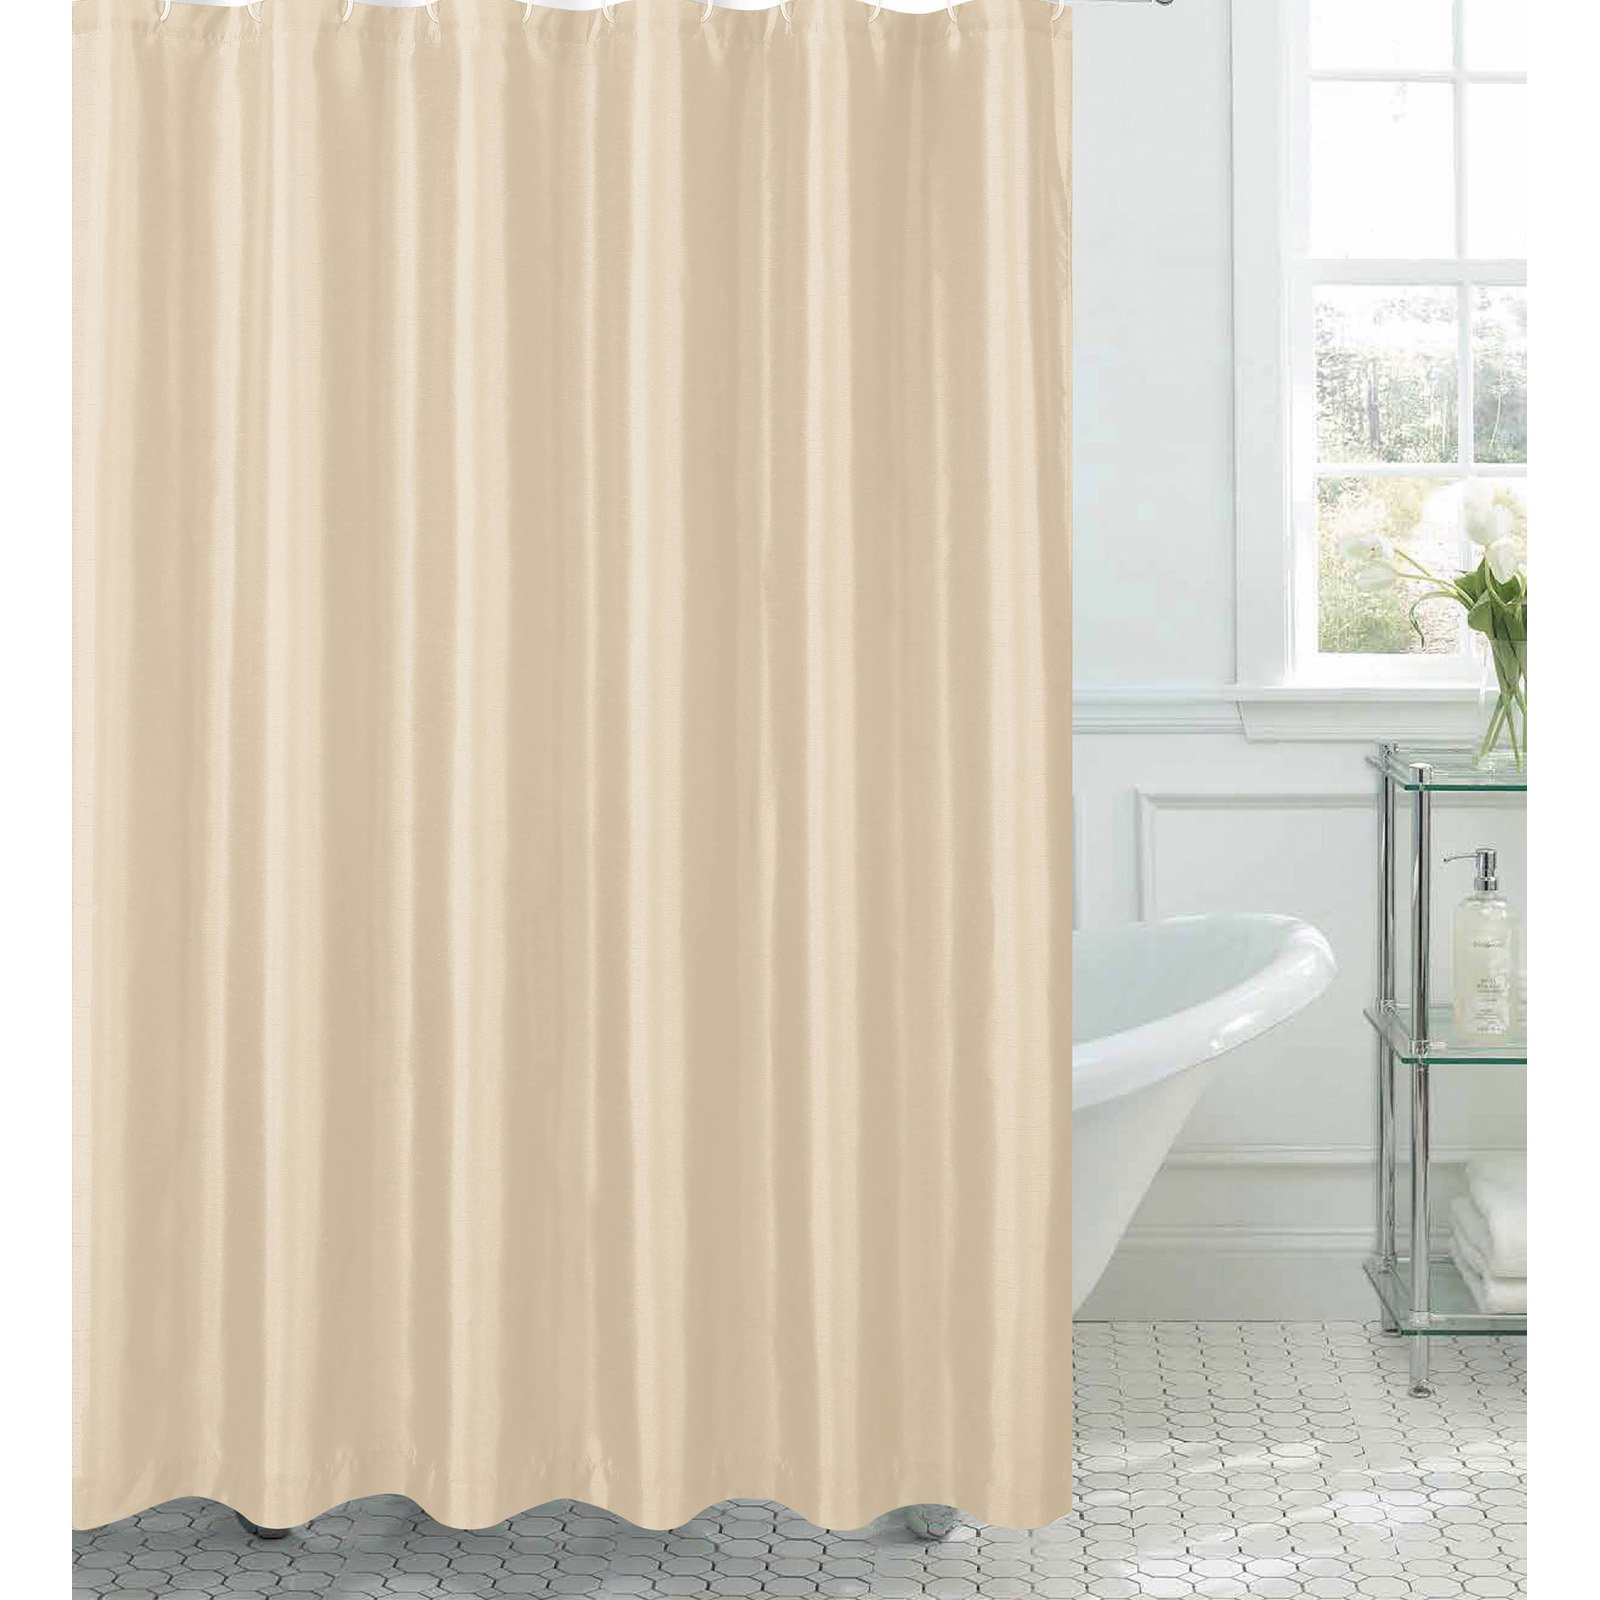 Jane Faux Silk Shower Curtain with 12 Metal Rings